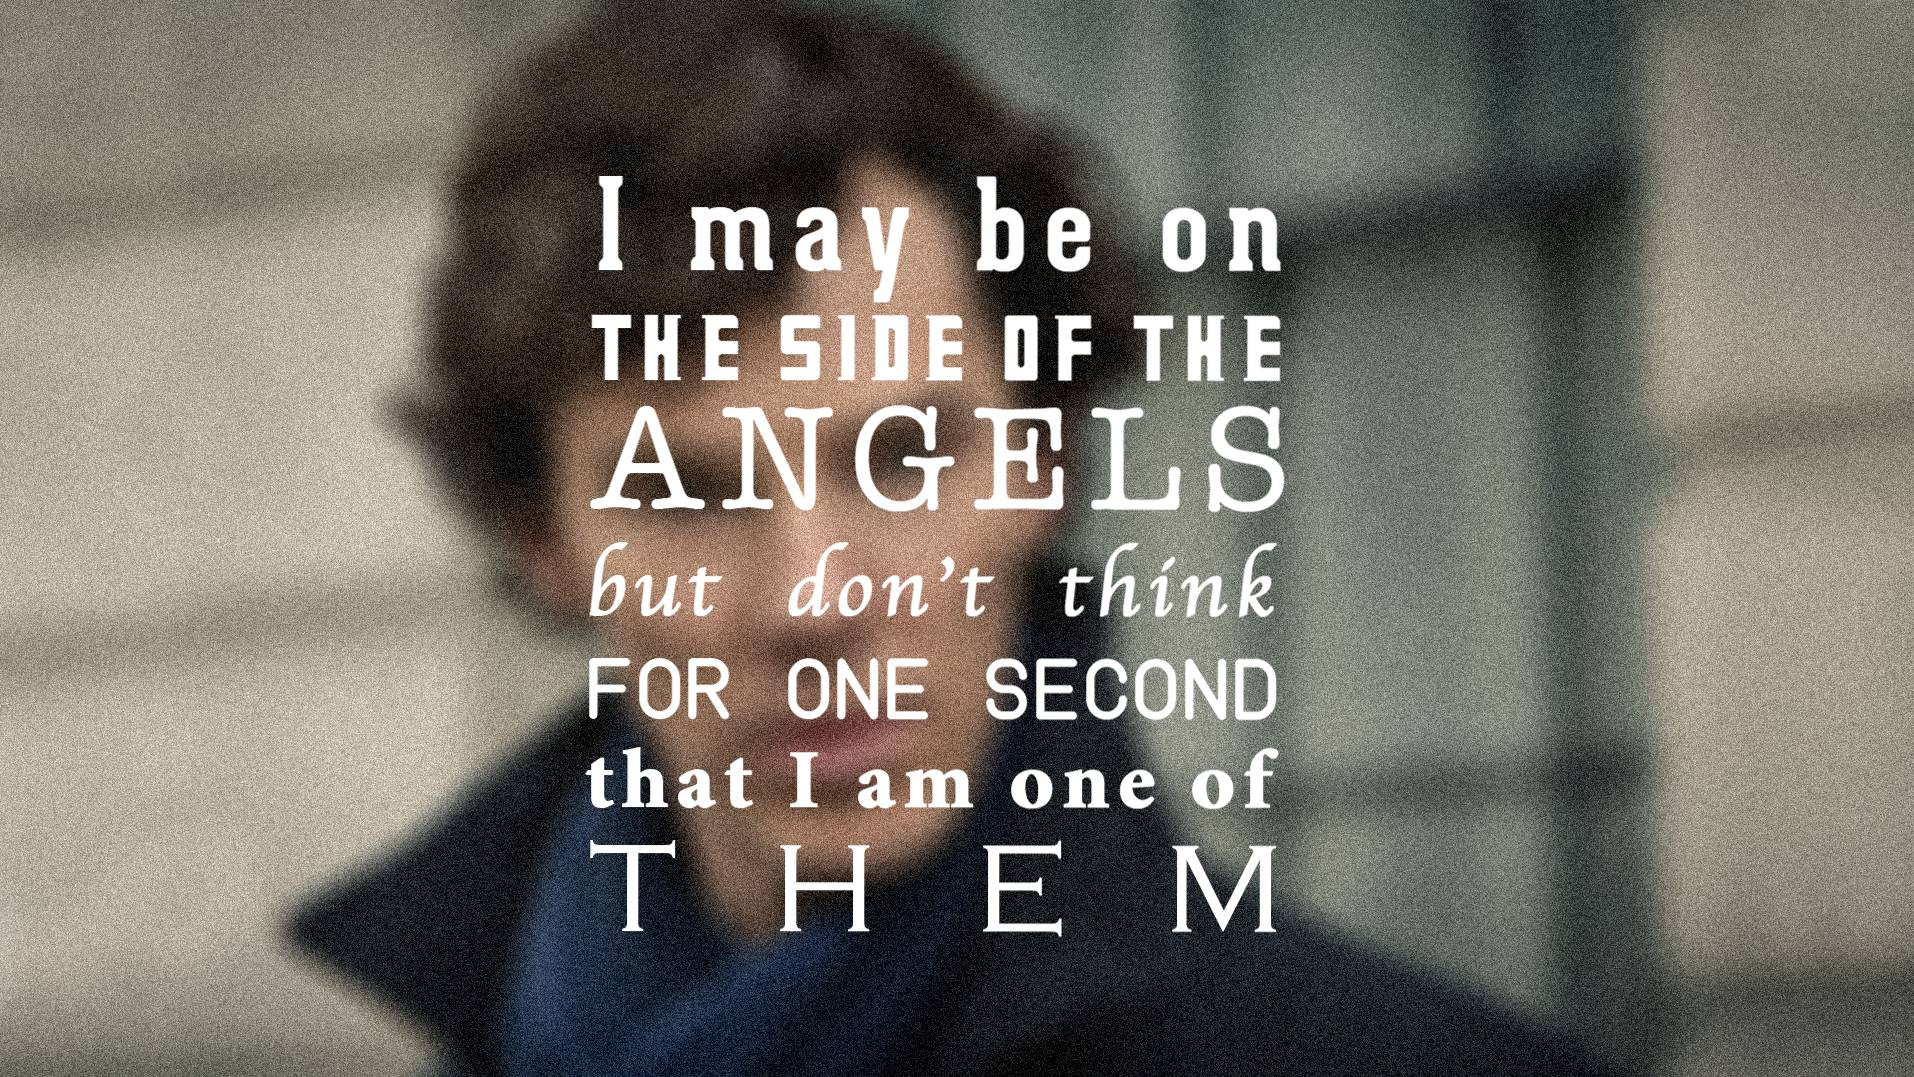 Sherlock Bbc Quotes Wallpaper 5 Best Quotes From The Reichenbach Fall Sherlocks Home